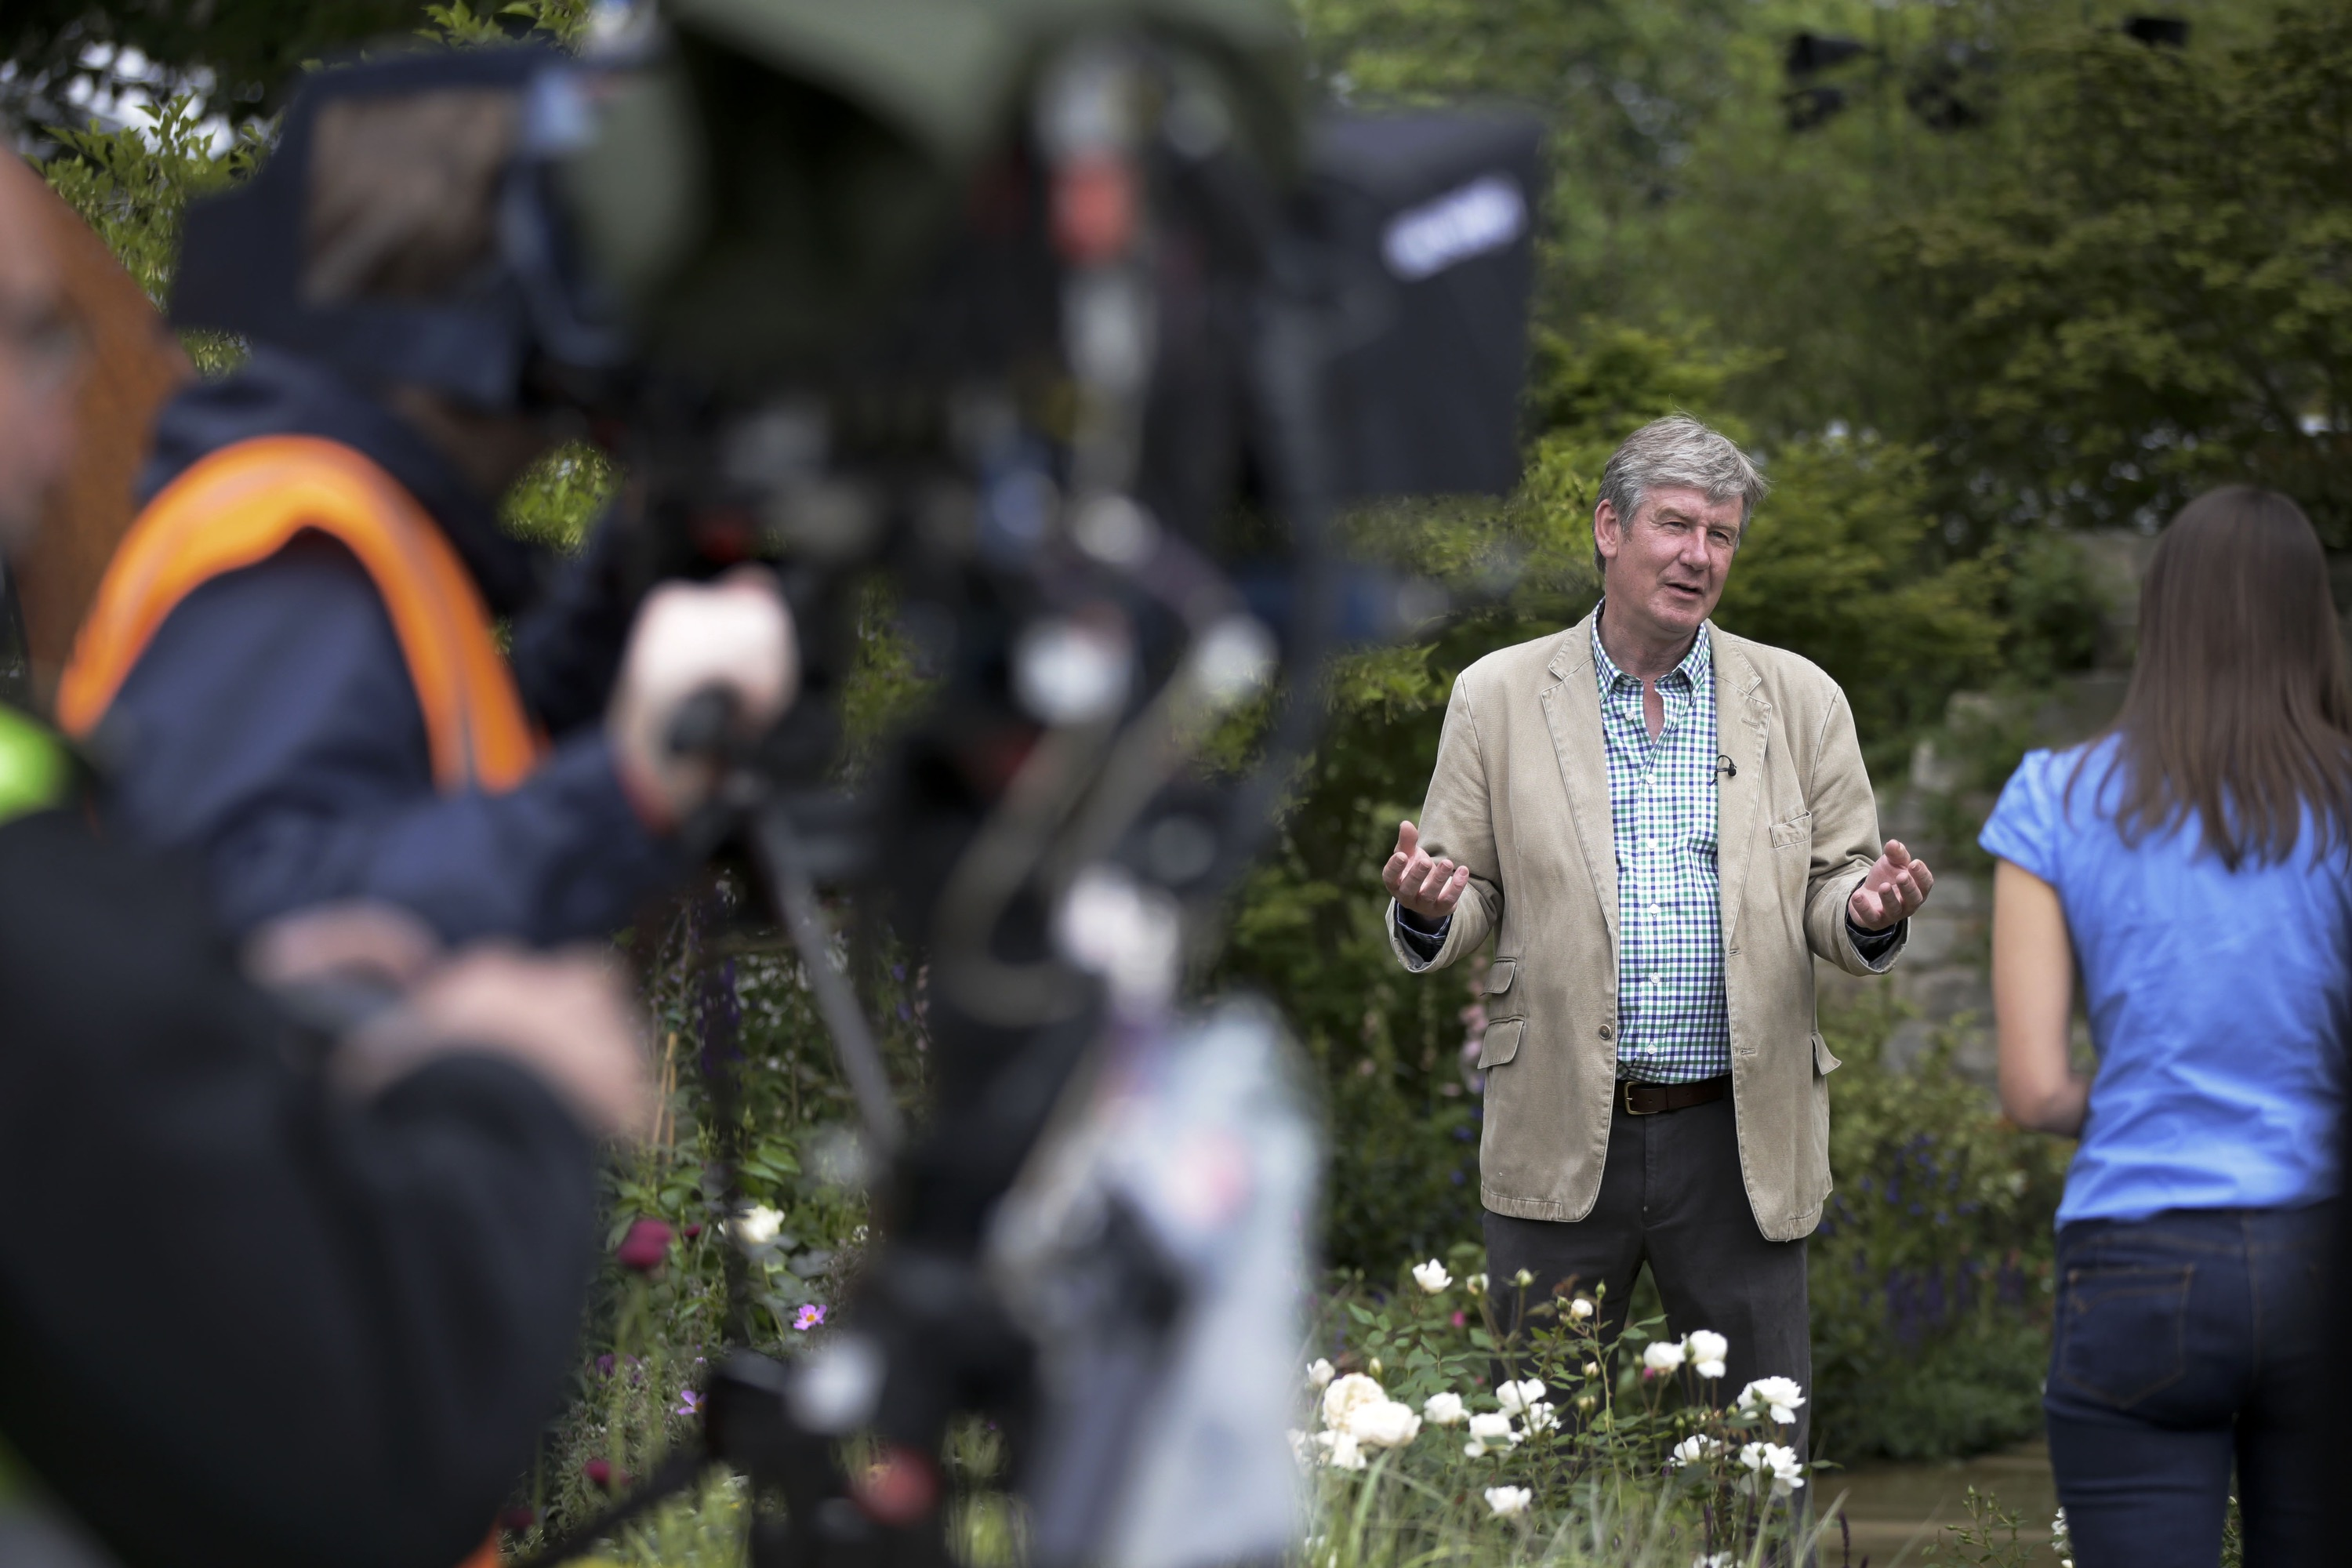 Roger Platts BBC interview at The Chelsea Flower Show for his Gold Medal winning Garden Windows Through Time.